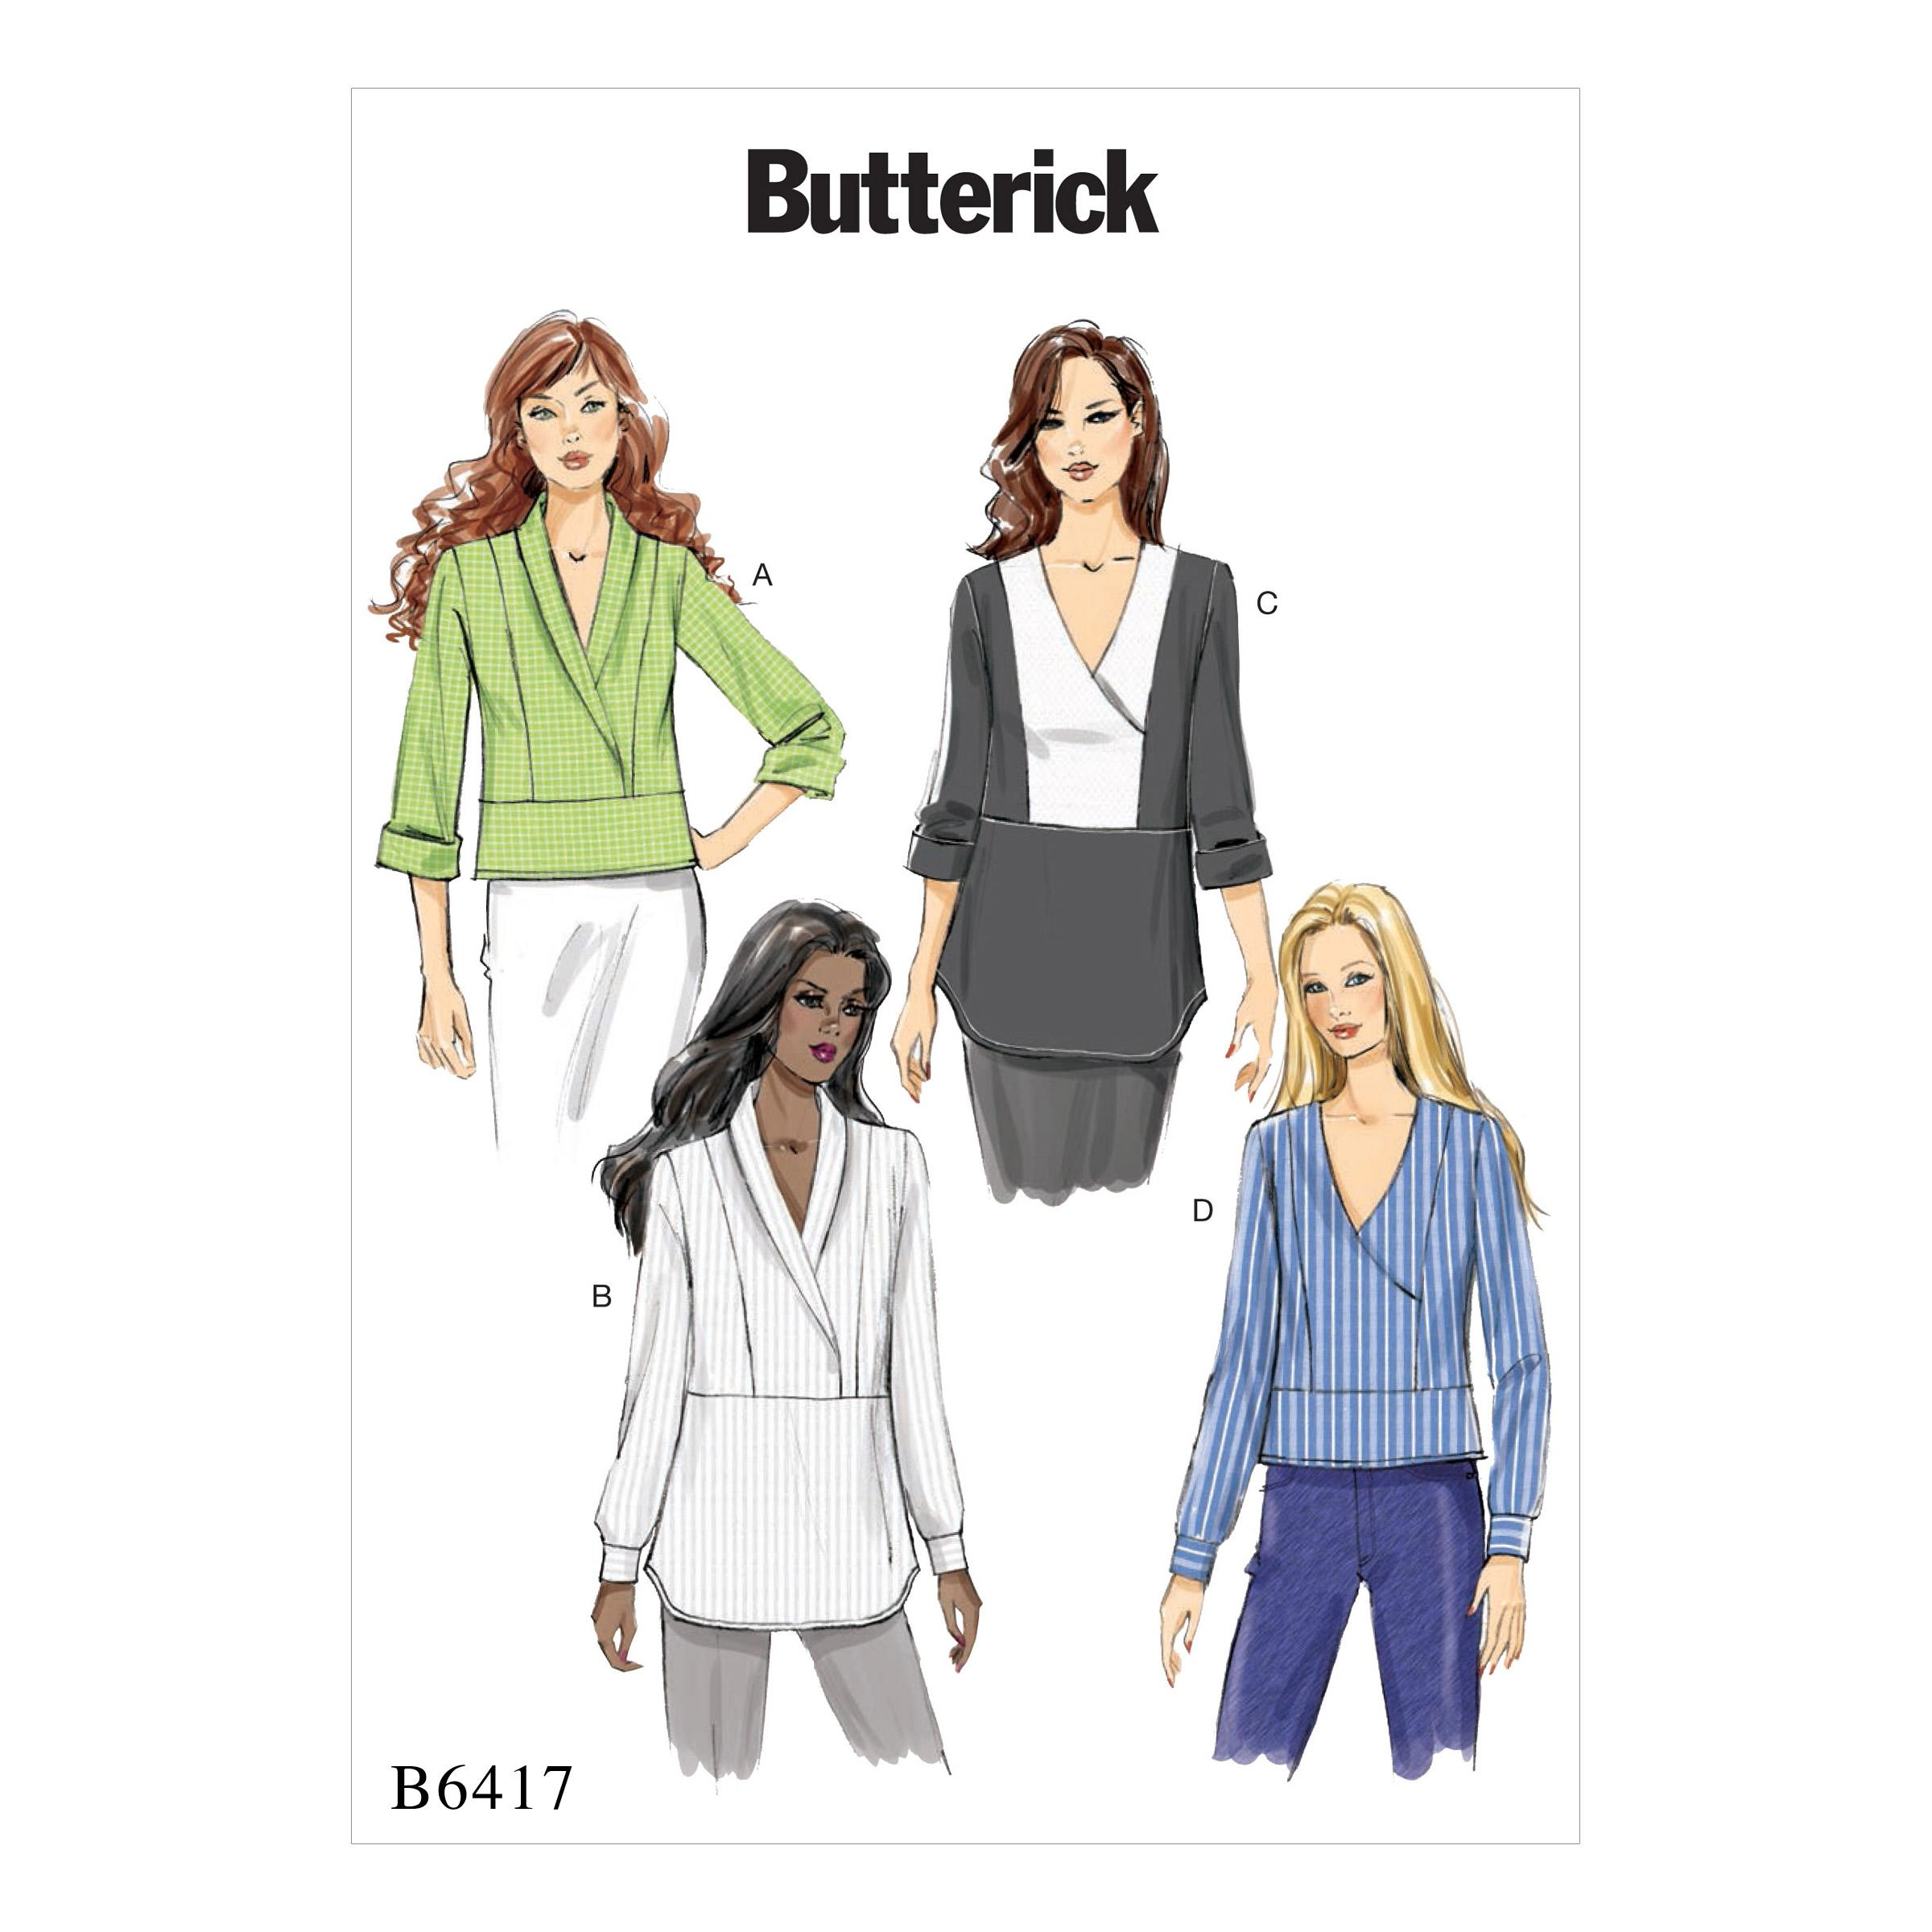 Butterick B6417 Misses' Surplice, Paneled Tops